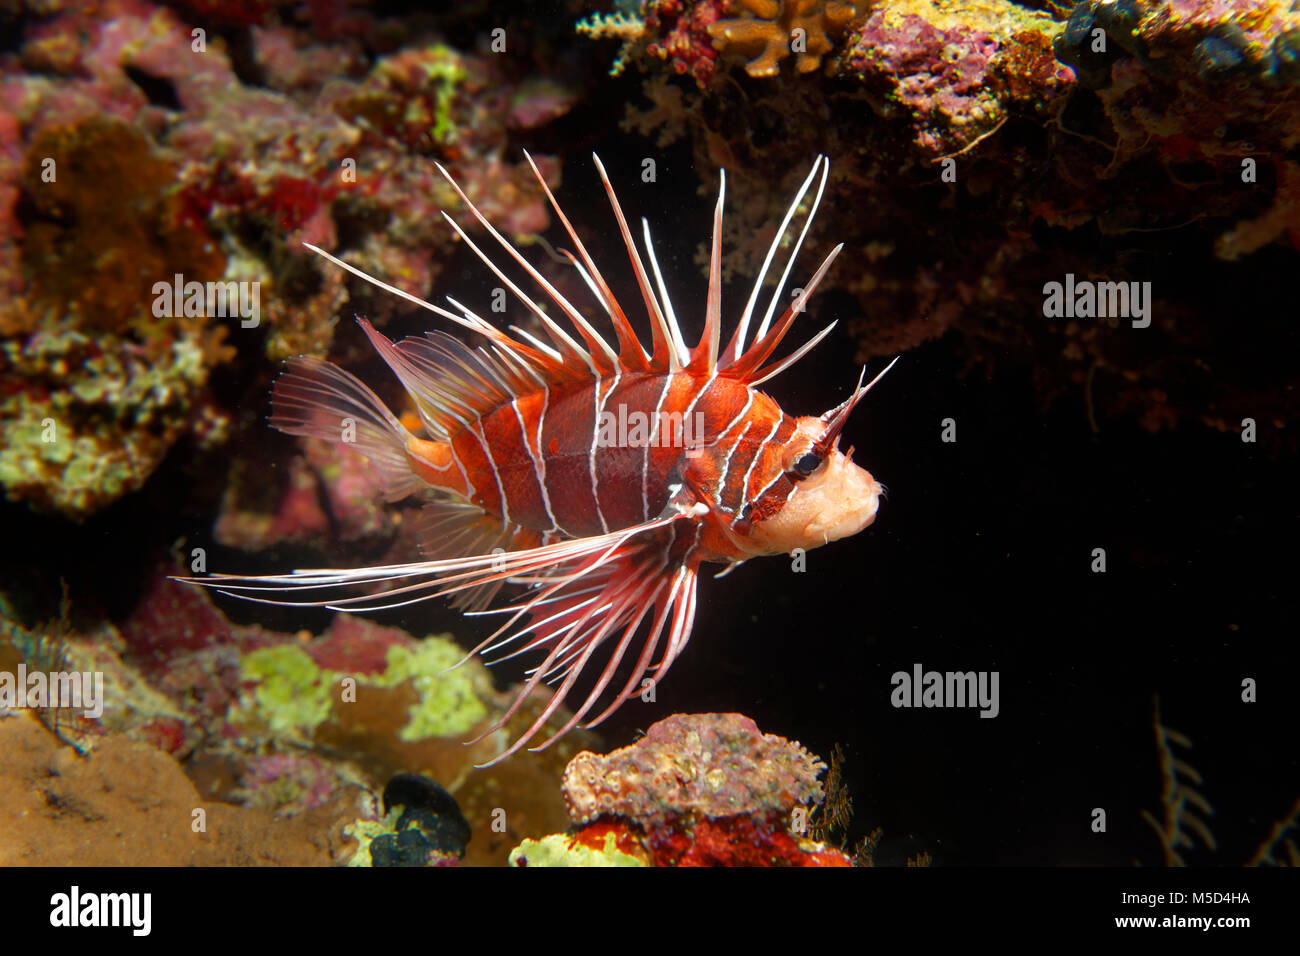 Radial firefish (Pterois radiata) at the coral reef, nocturnal, Red Sea, Egypt - Stock Image